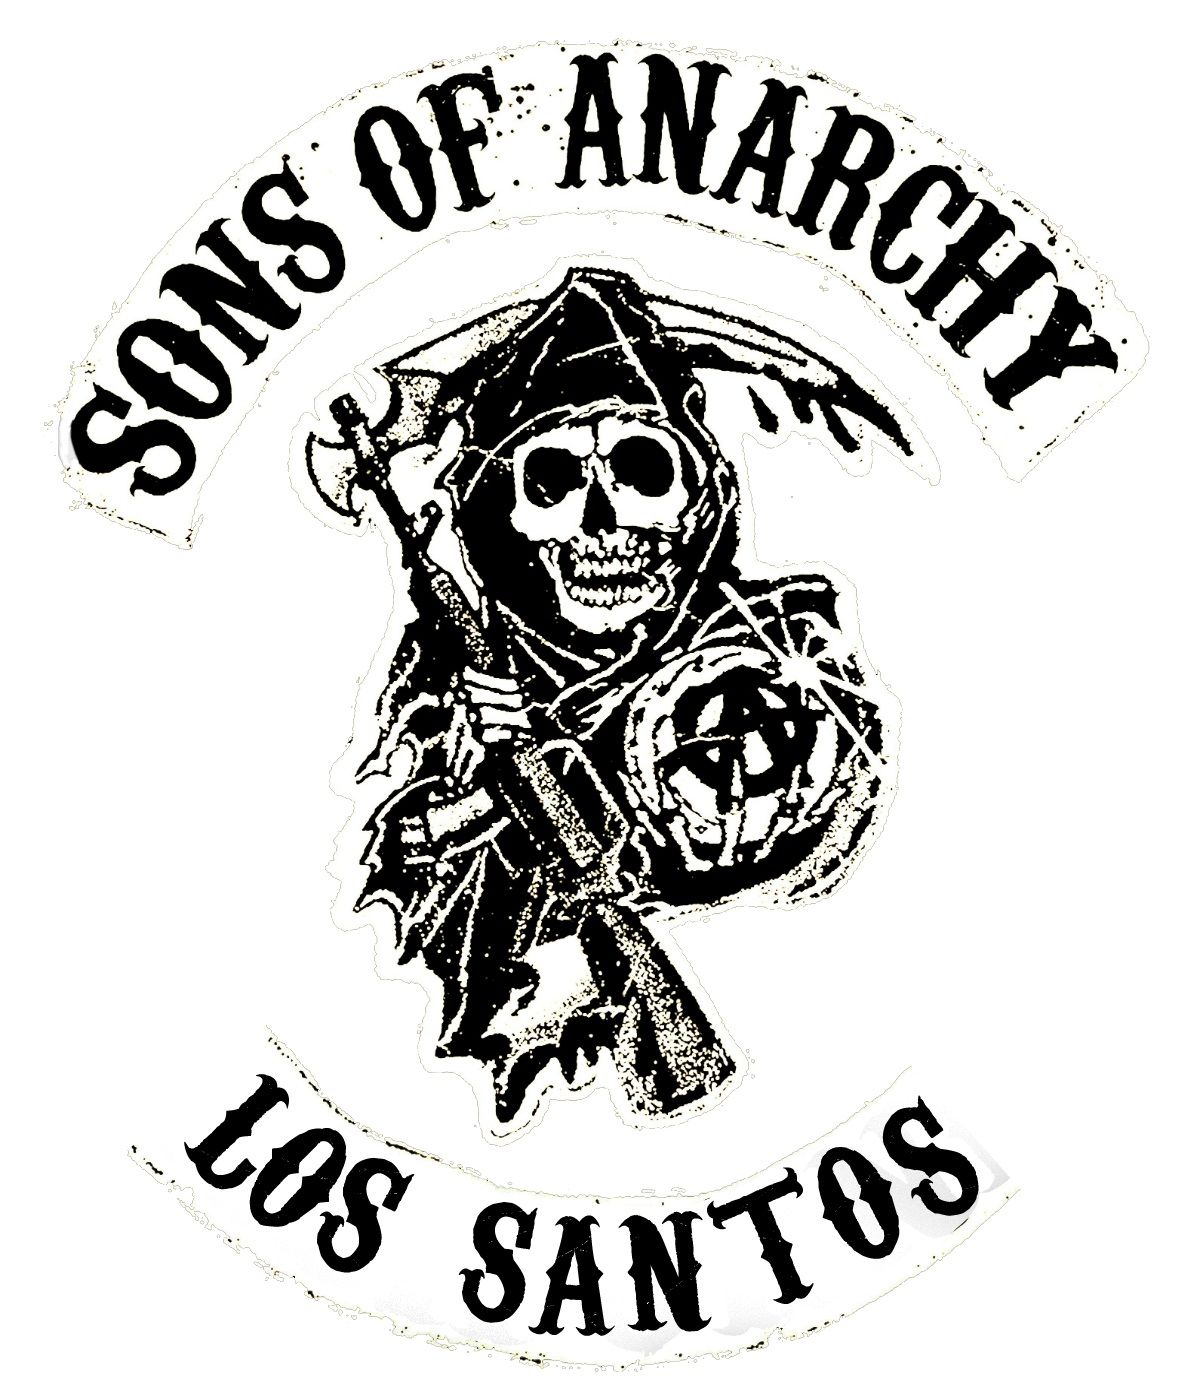 Soa Reaper Logos And States Sons Of Anarchy Reaper Logo Skull Reaper Www Vvallpaper Net2 Sons Of Anarchy Tattoos Sons Of Anarchy Mc Anarchy Symbol